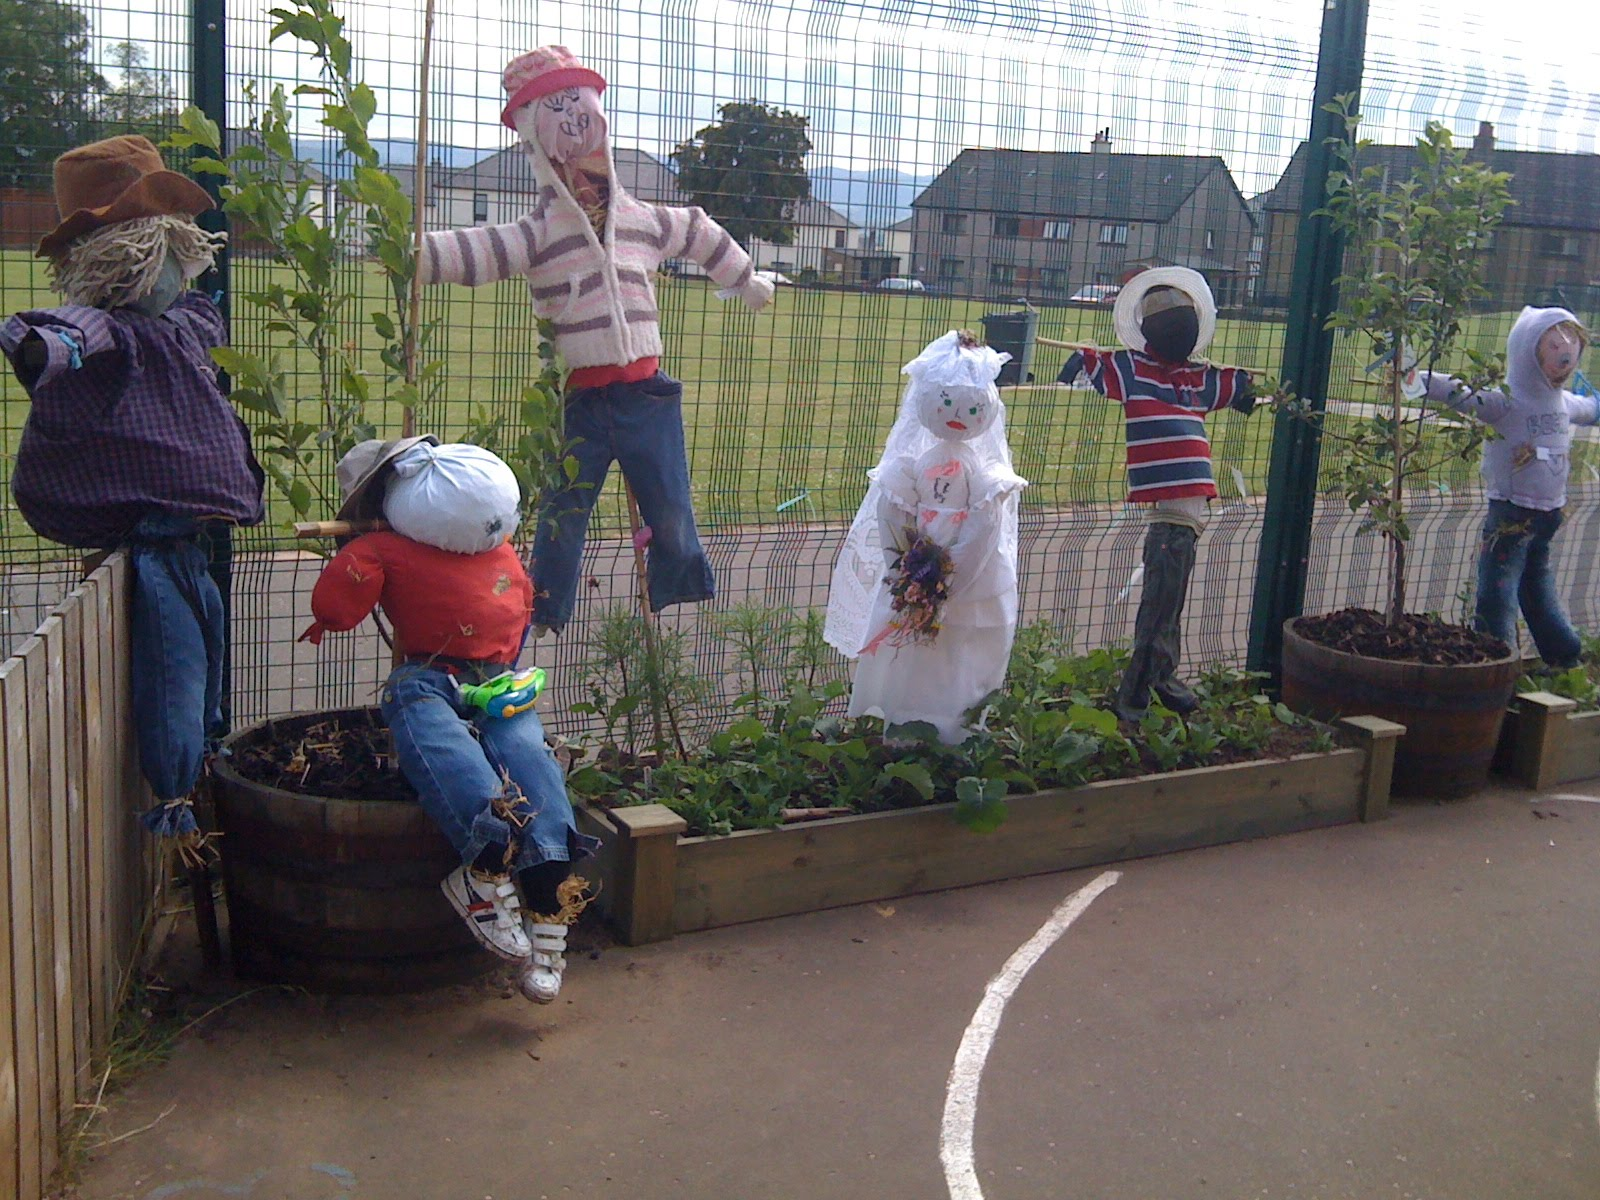 I'm a teacher, get me OUTSIDE here!: Scarecrows